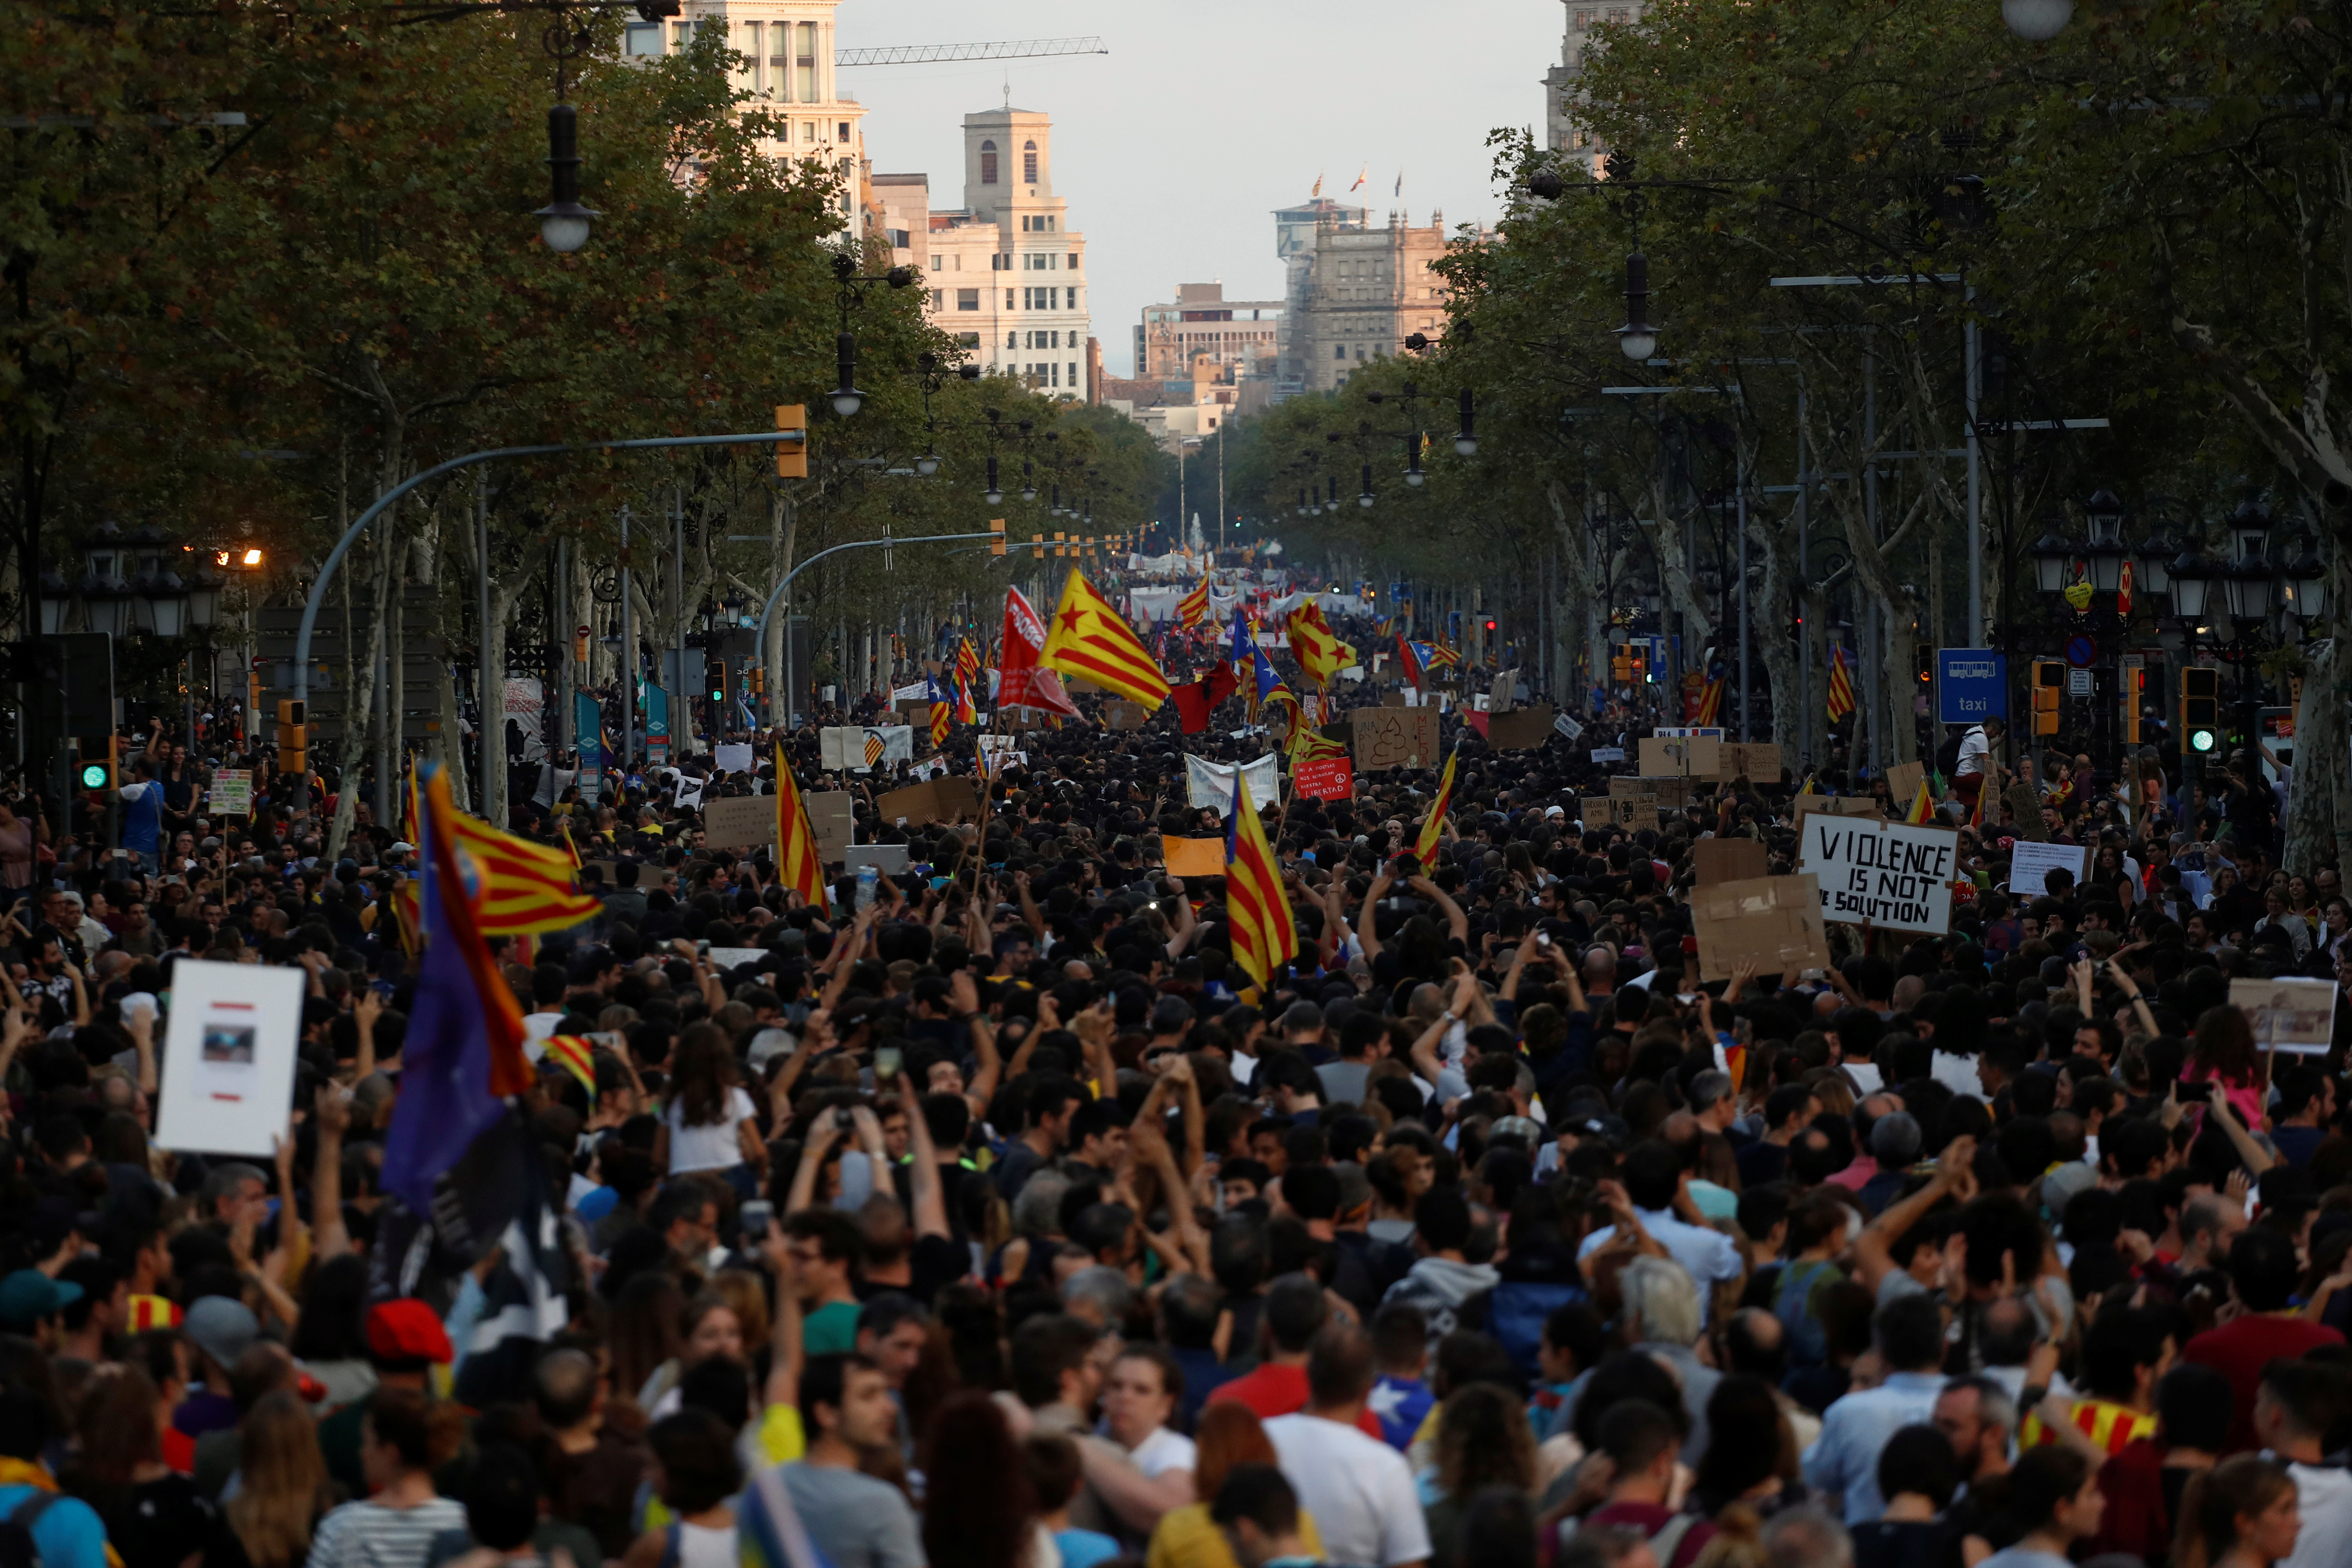 People attend a demonstration two days after the banned independence referendum in Barcelona, Spain, October 3, 2017. REUTERS/Juan Medina - RC14DC7437D0